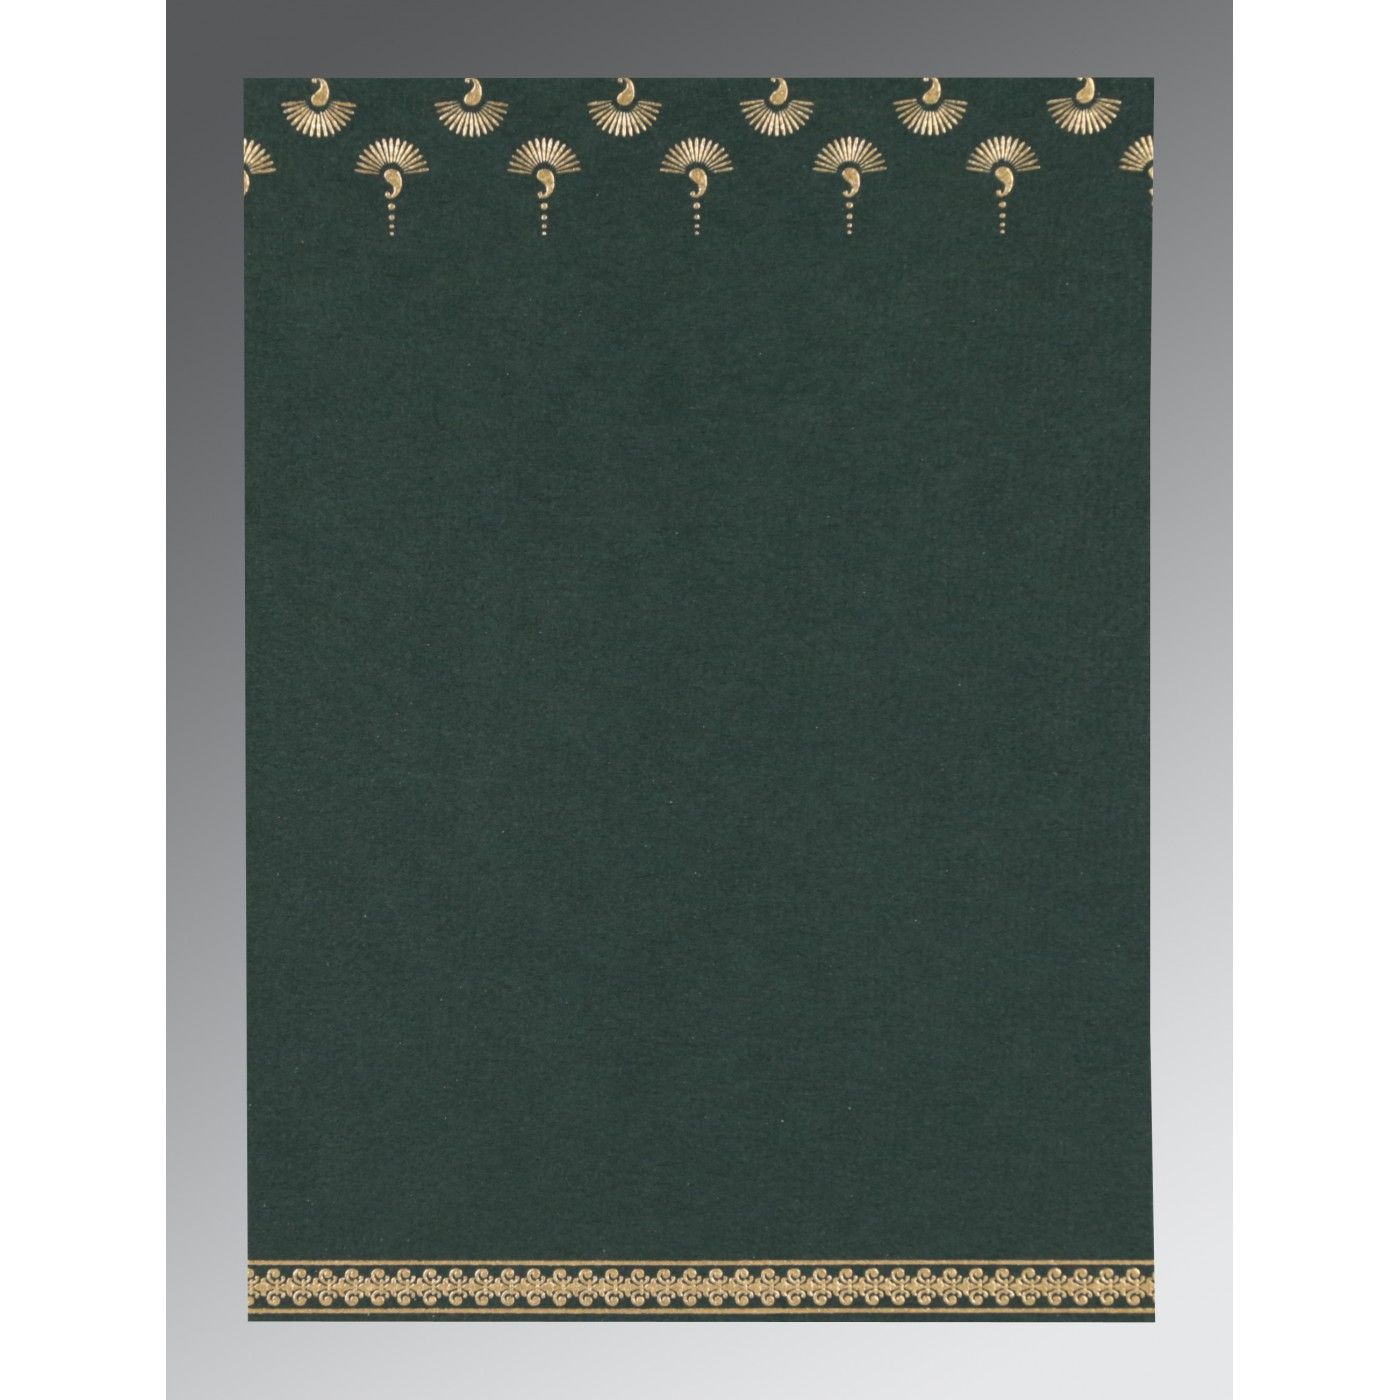 DARK GREEN MATTE SCREEN PRINTED WEDDING INVITATION : CSO-8247N - IndianWeddingCards